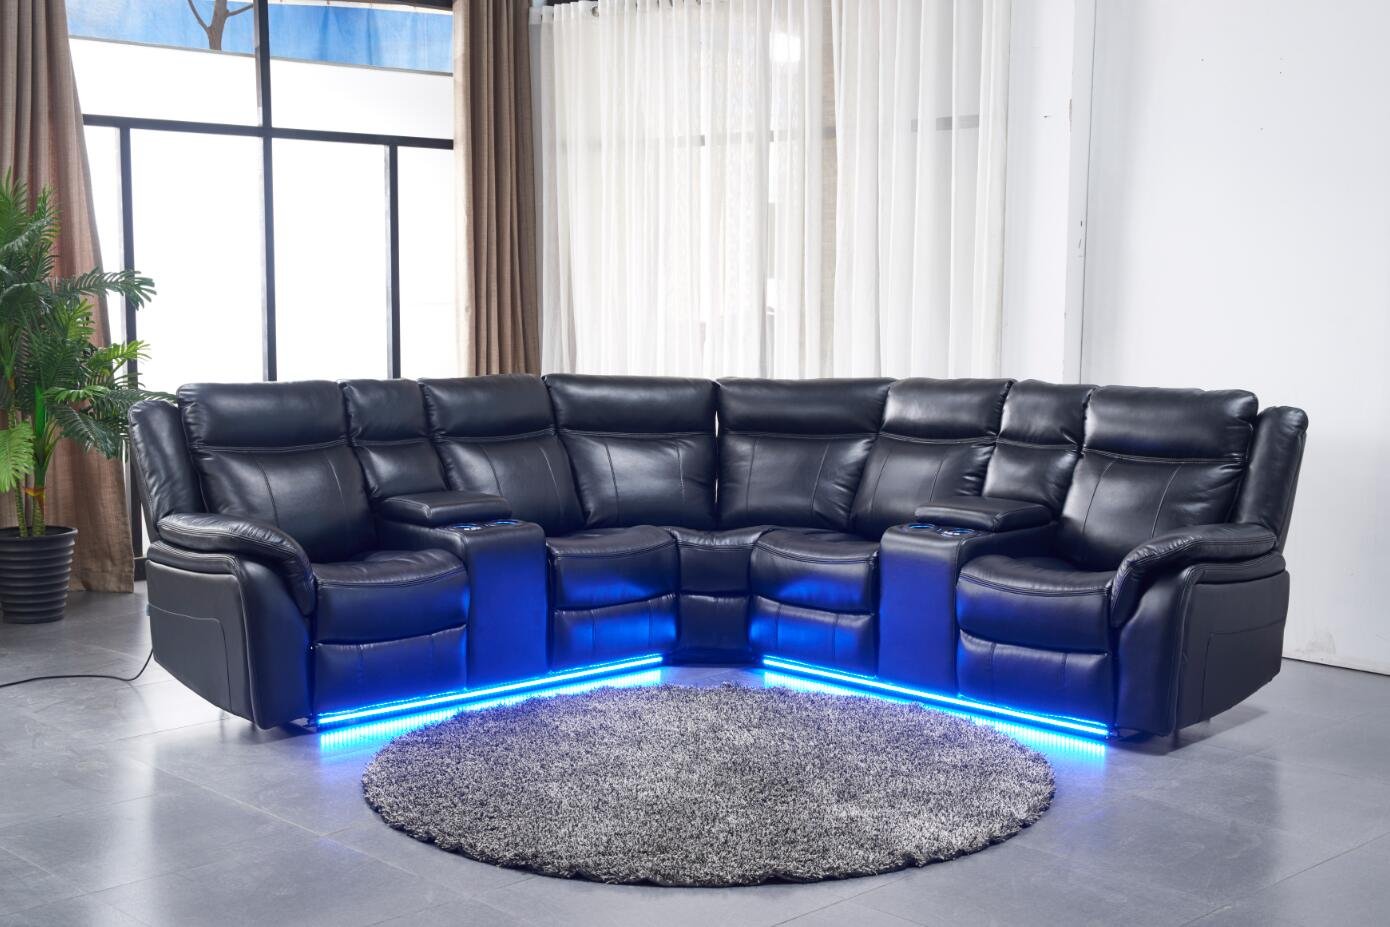 Contemporary Modern Power Motion Recliner Sectional Sofa Set W USB And LED  Lights Black Air Leather Cushion Recliner Loveseats Corner Console Living  ...